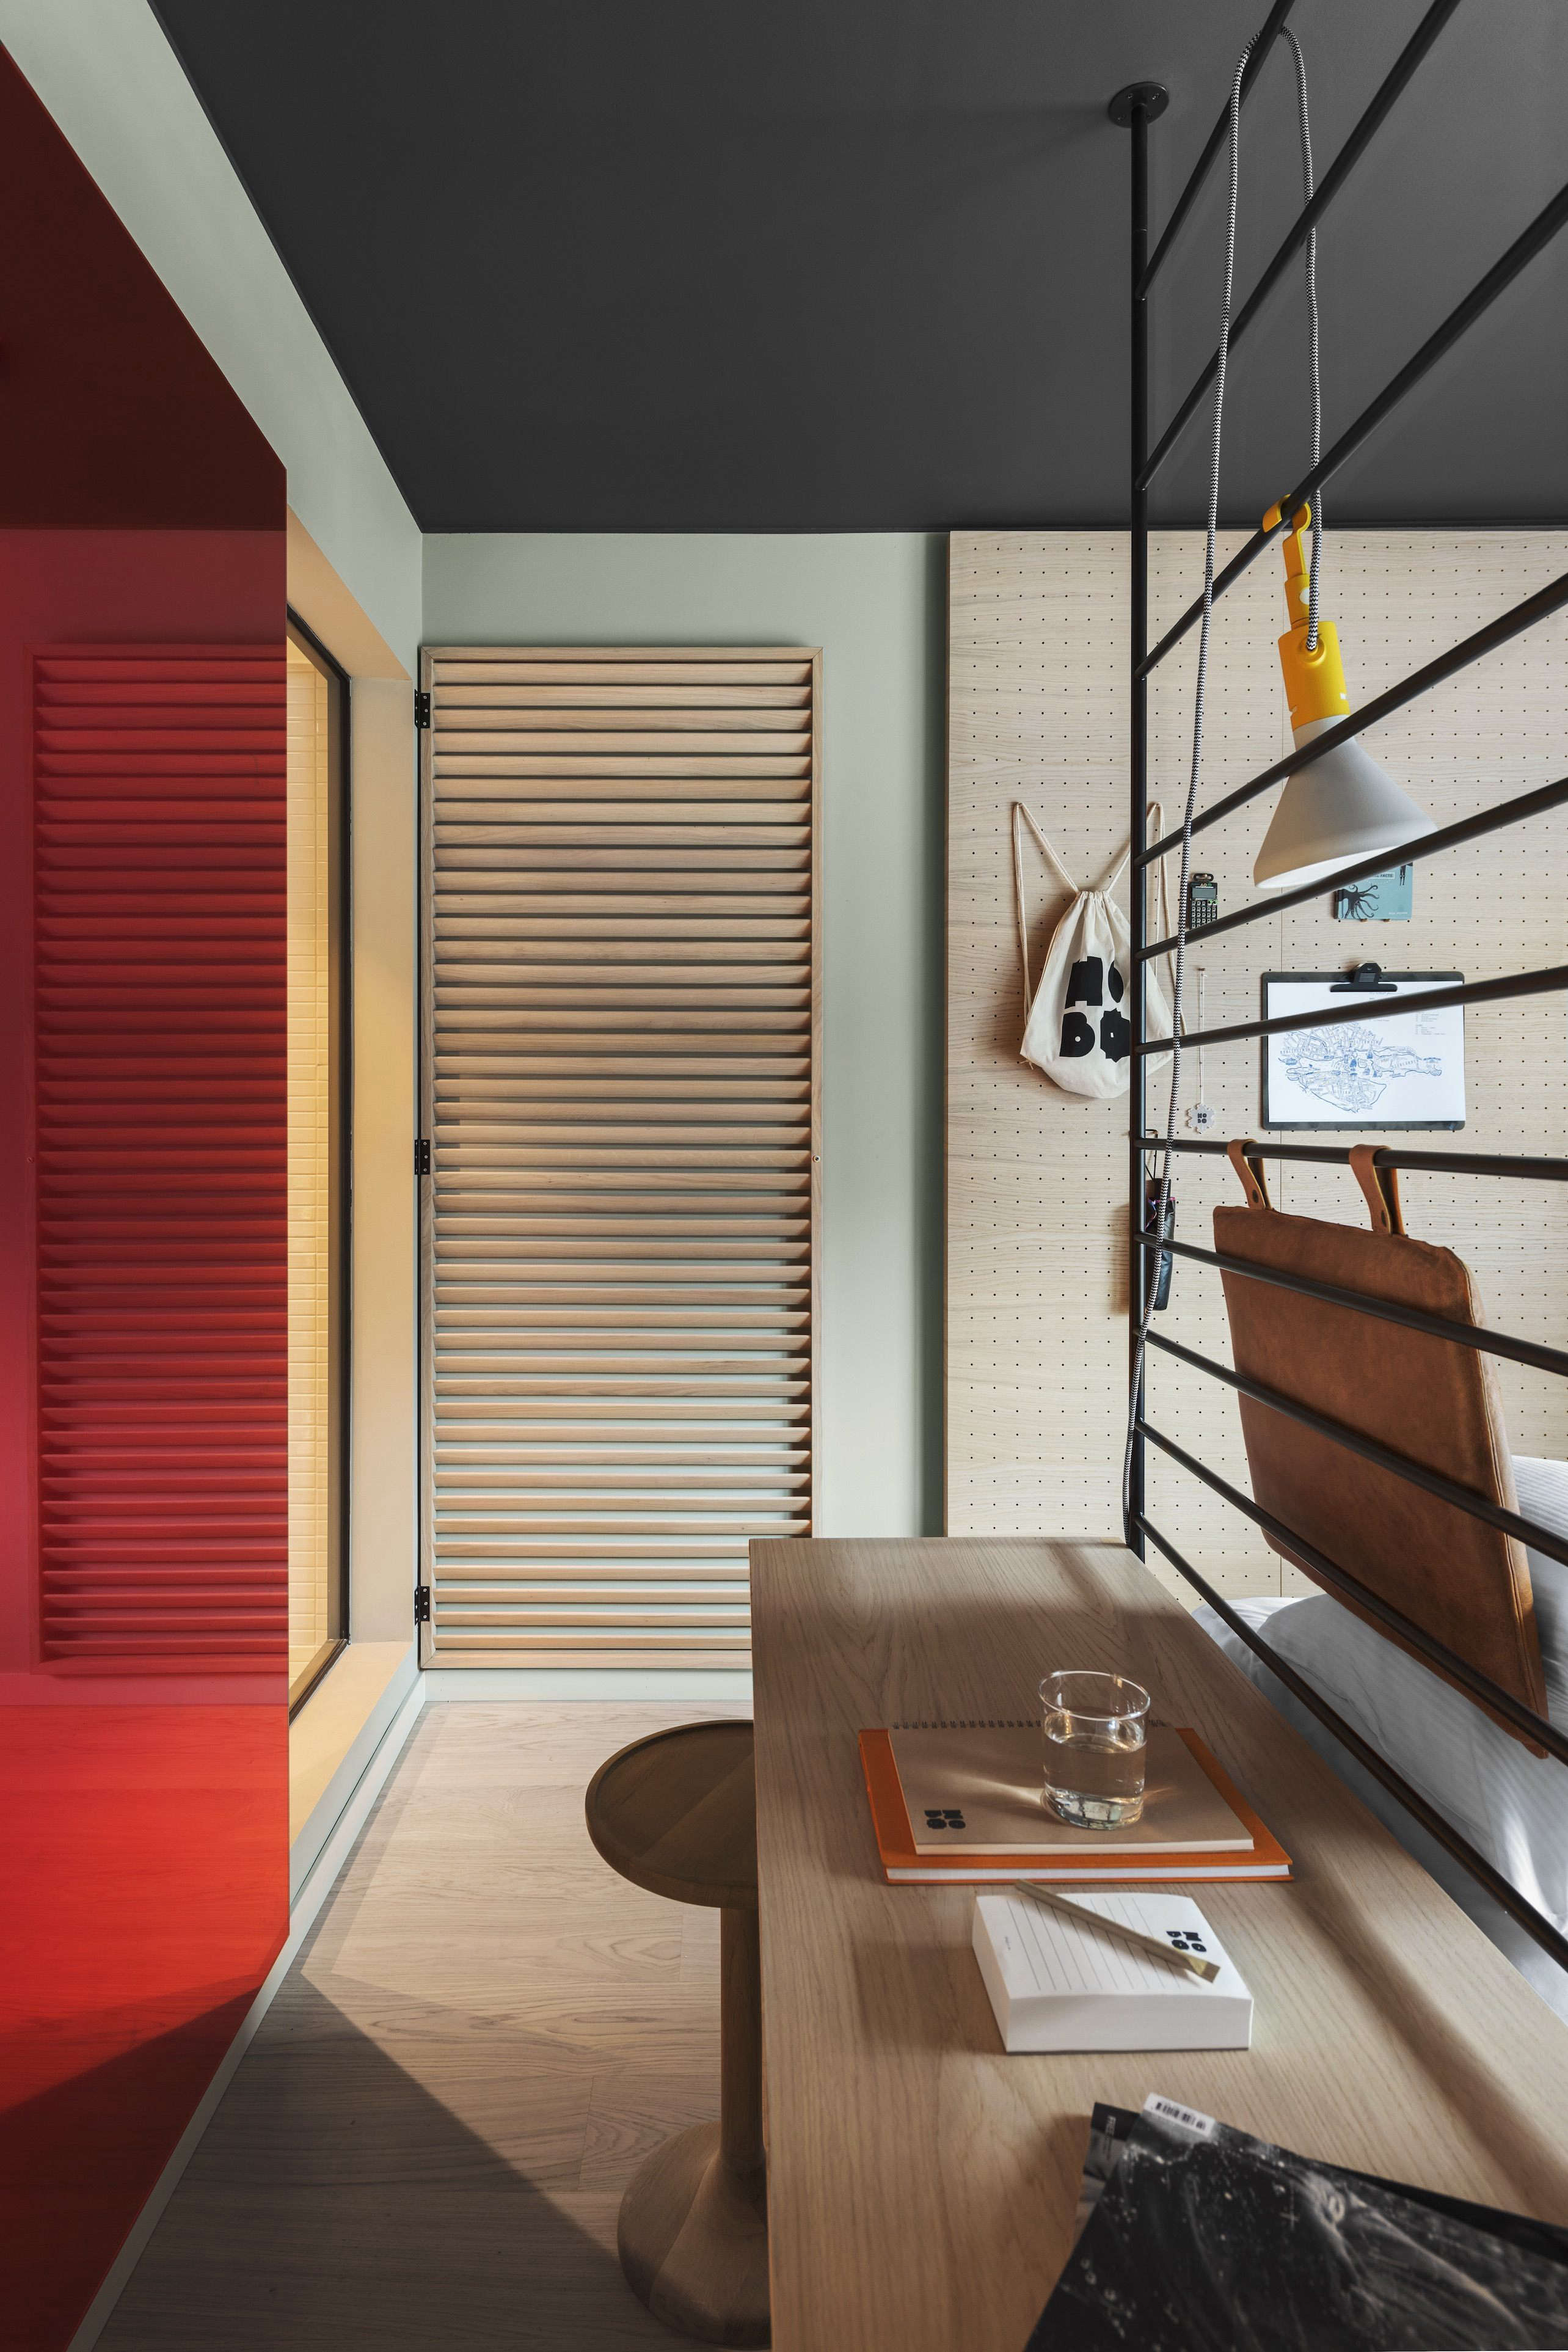 Small Space Solutions 5 Tiny Bedroom And Dorm Ideas To Steal From Stockholm S Hobo Hotel The Organized Home